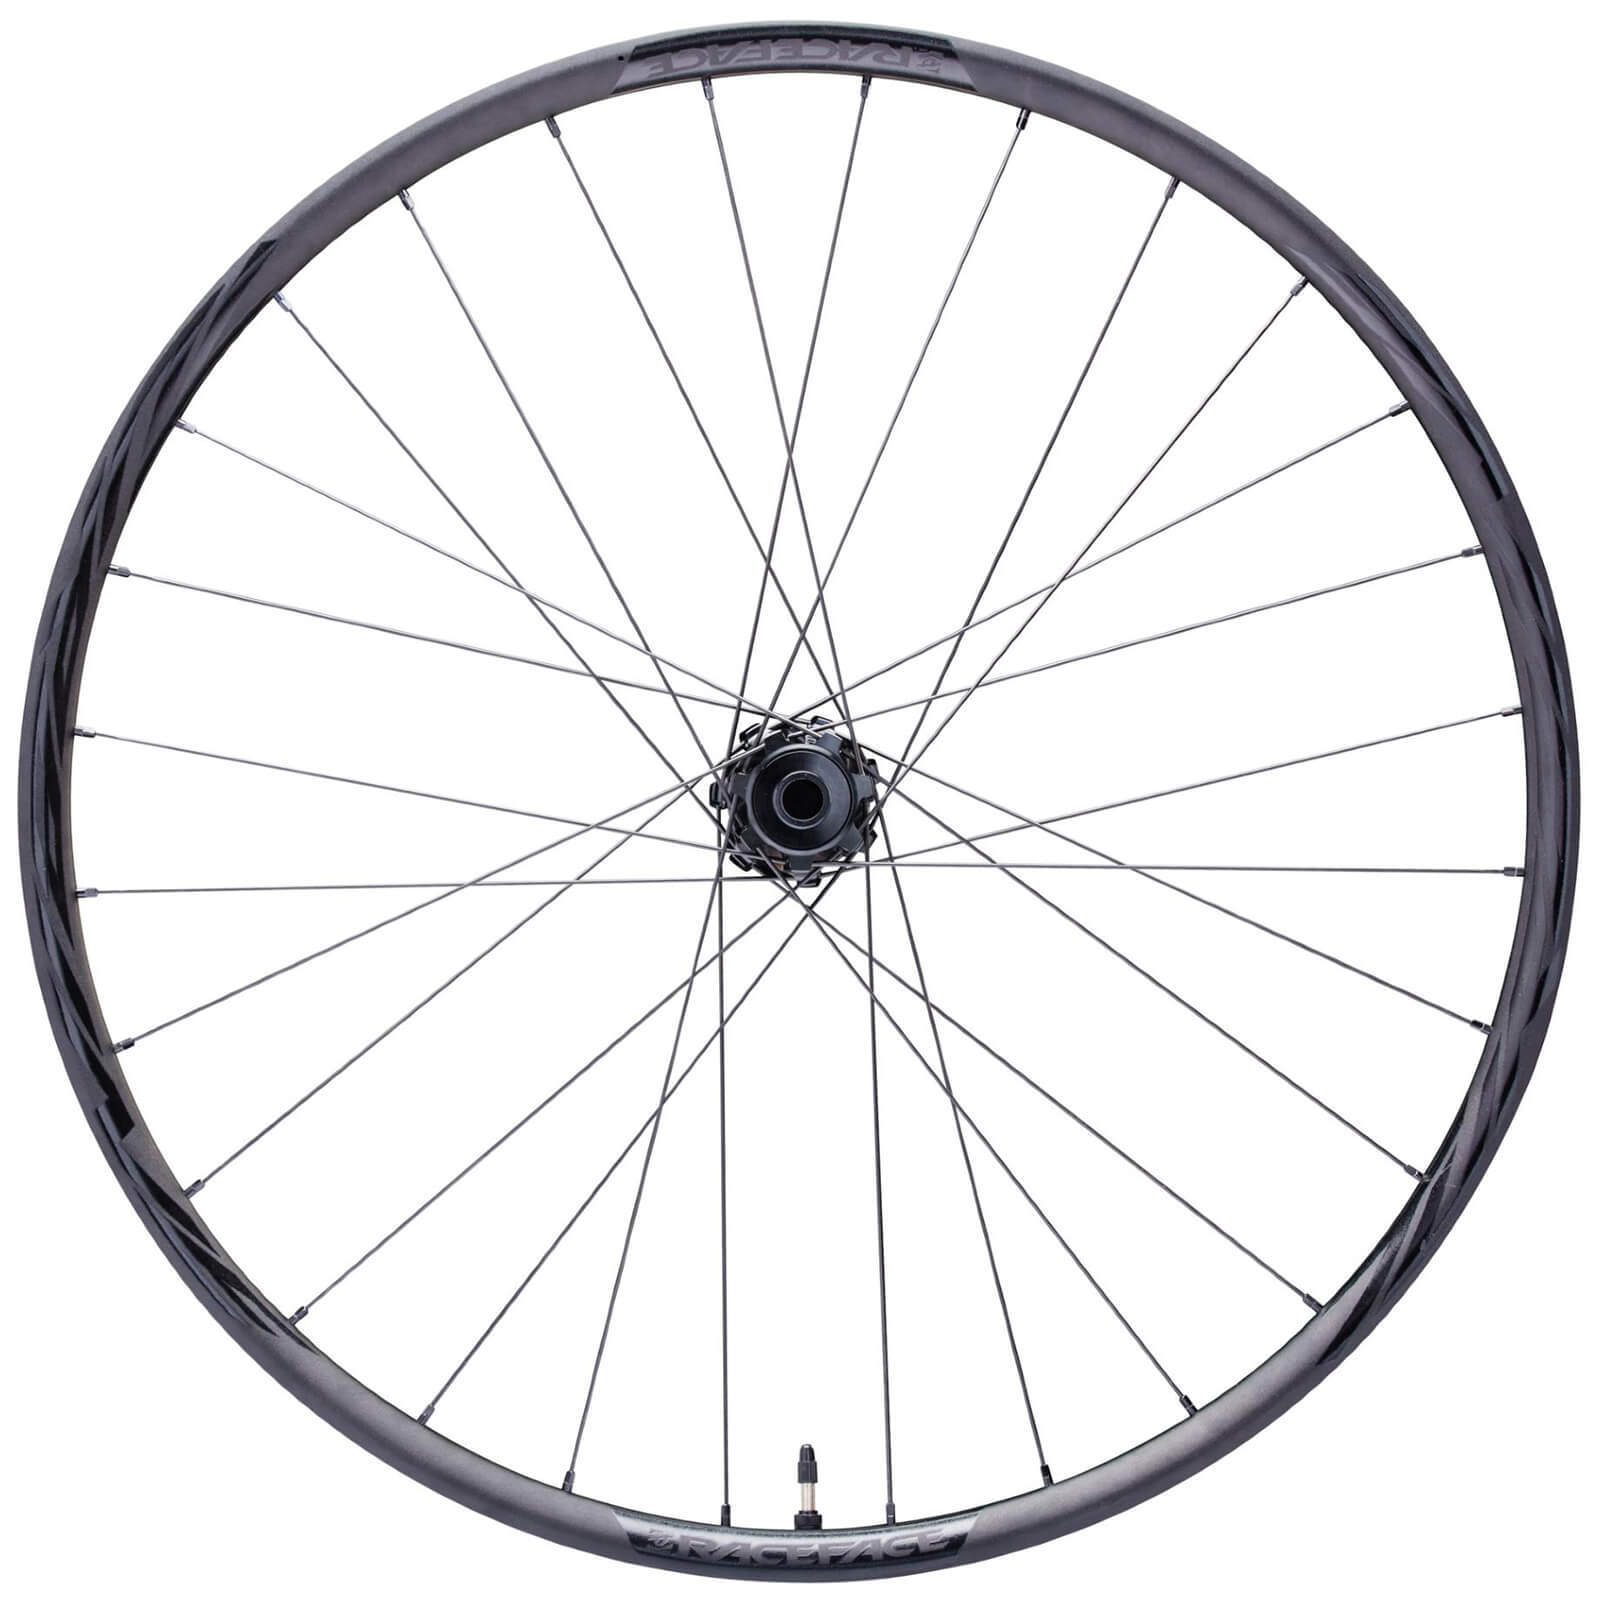 Race Face Turbine R 30mm MTB Alloy Rear Wheel - Black - 27.5 Inch/12 x 148mm